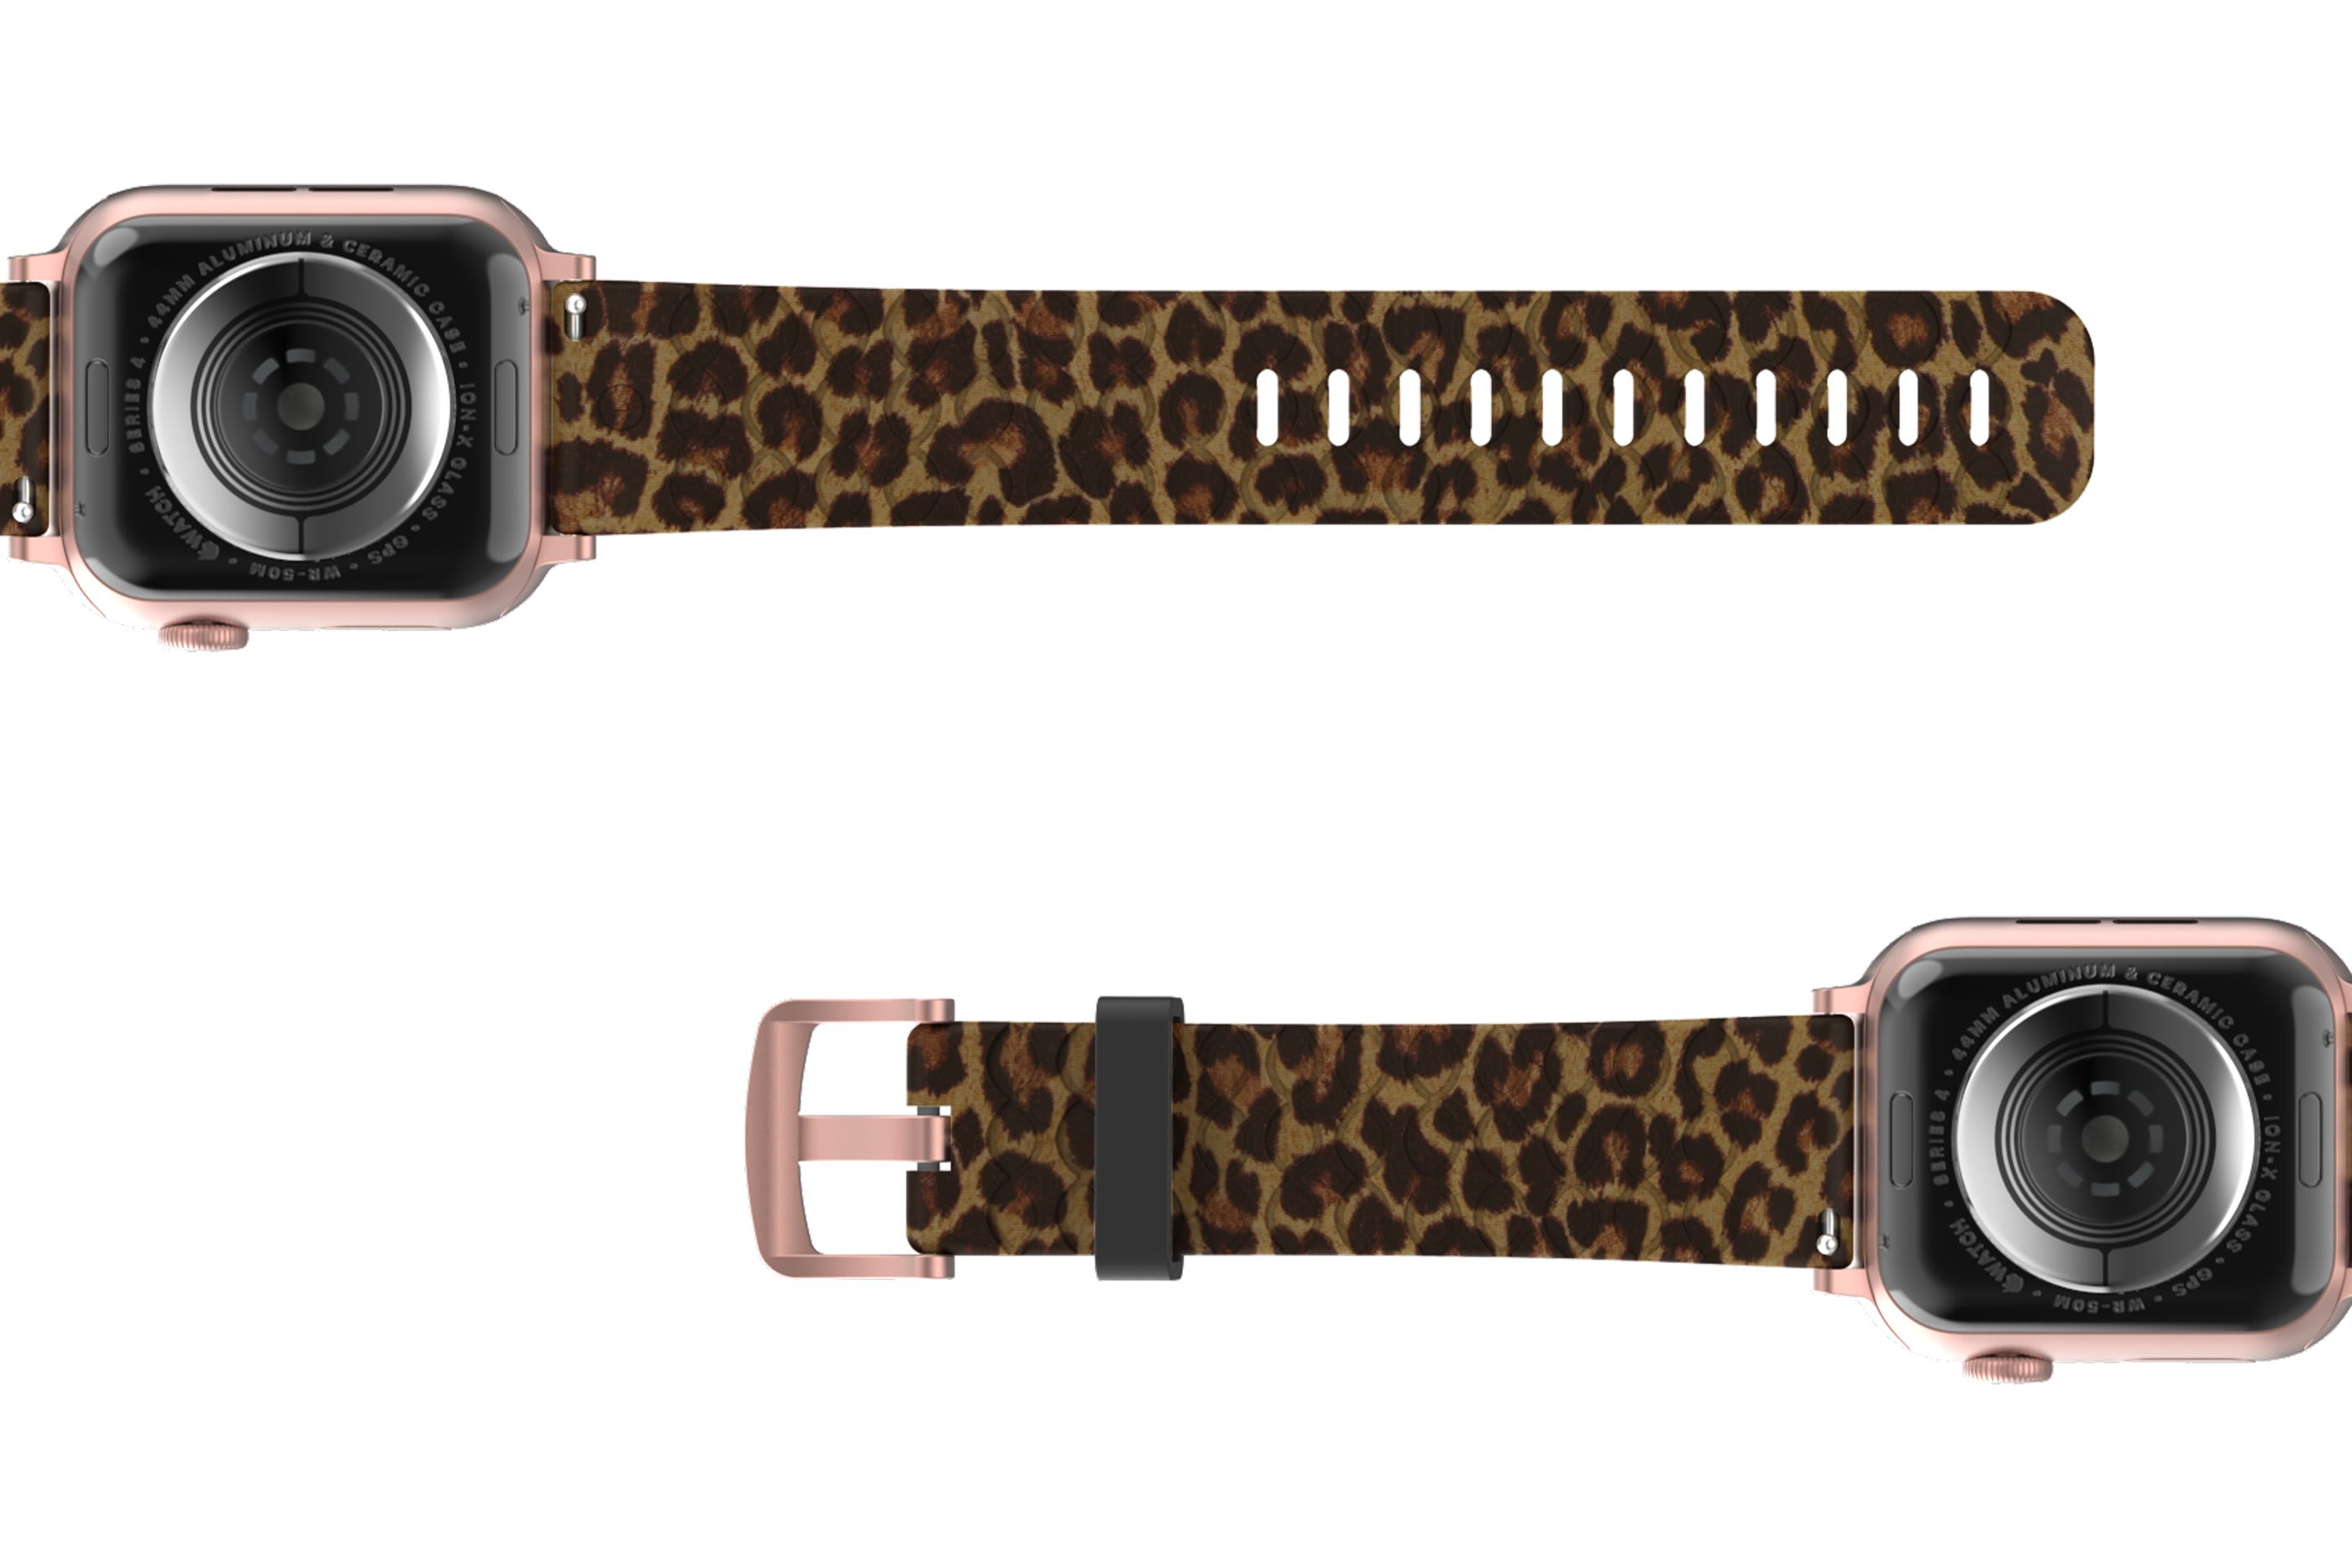 Leopard Apple Watch Band with rose gold hardware viewed bottom up